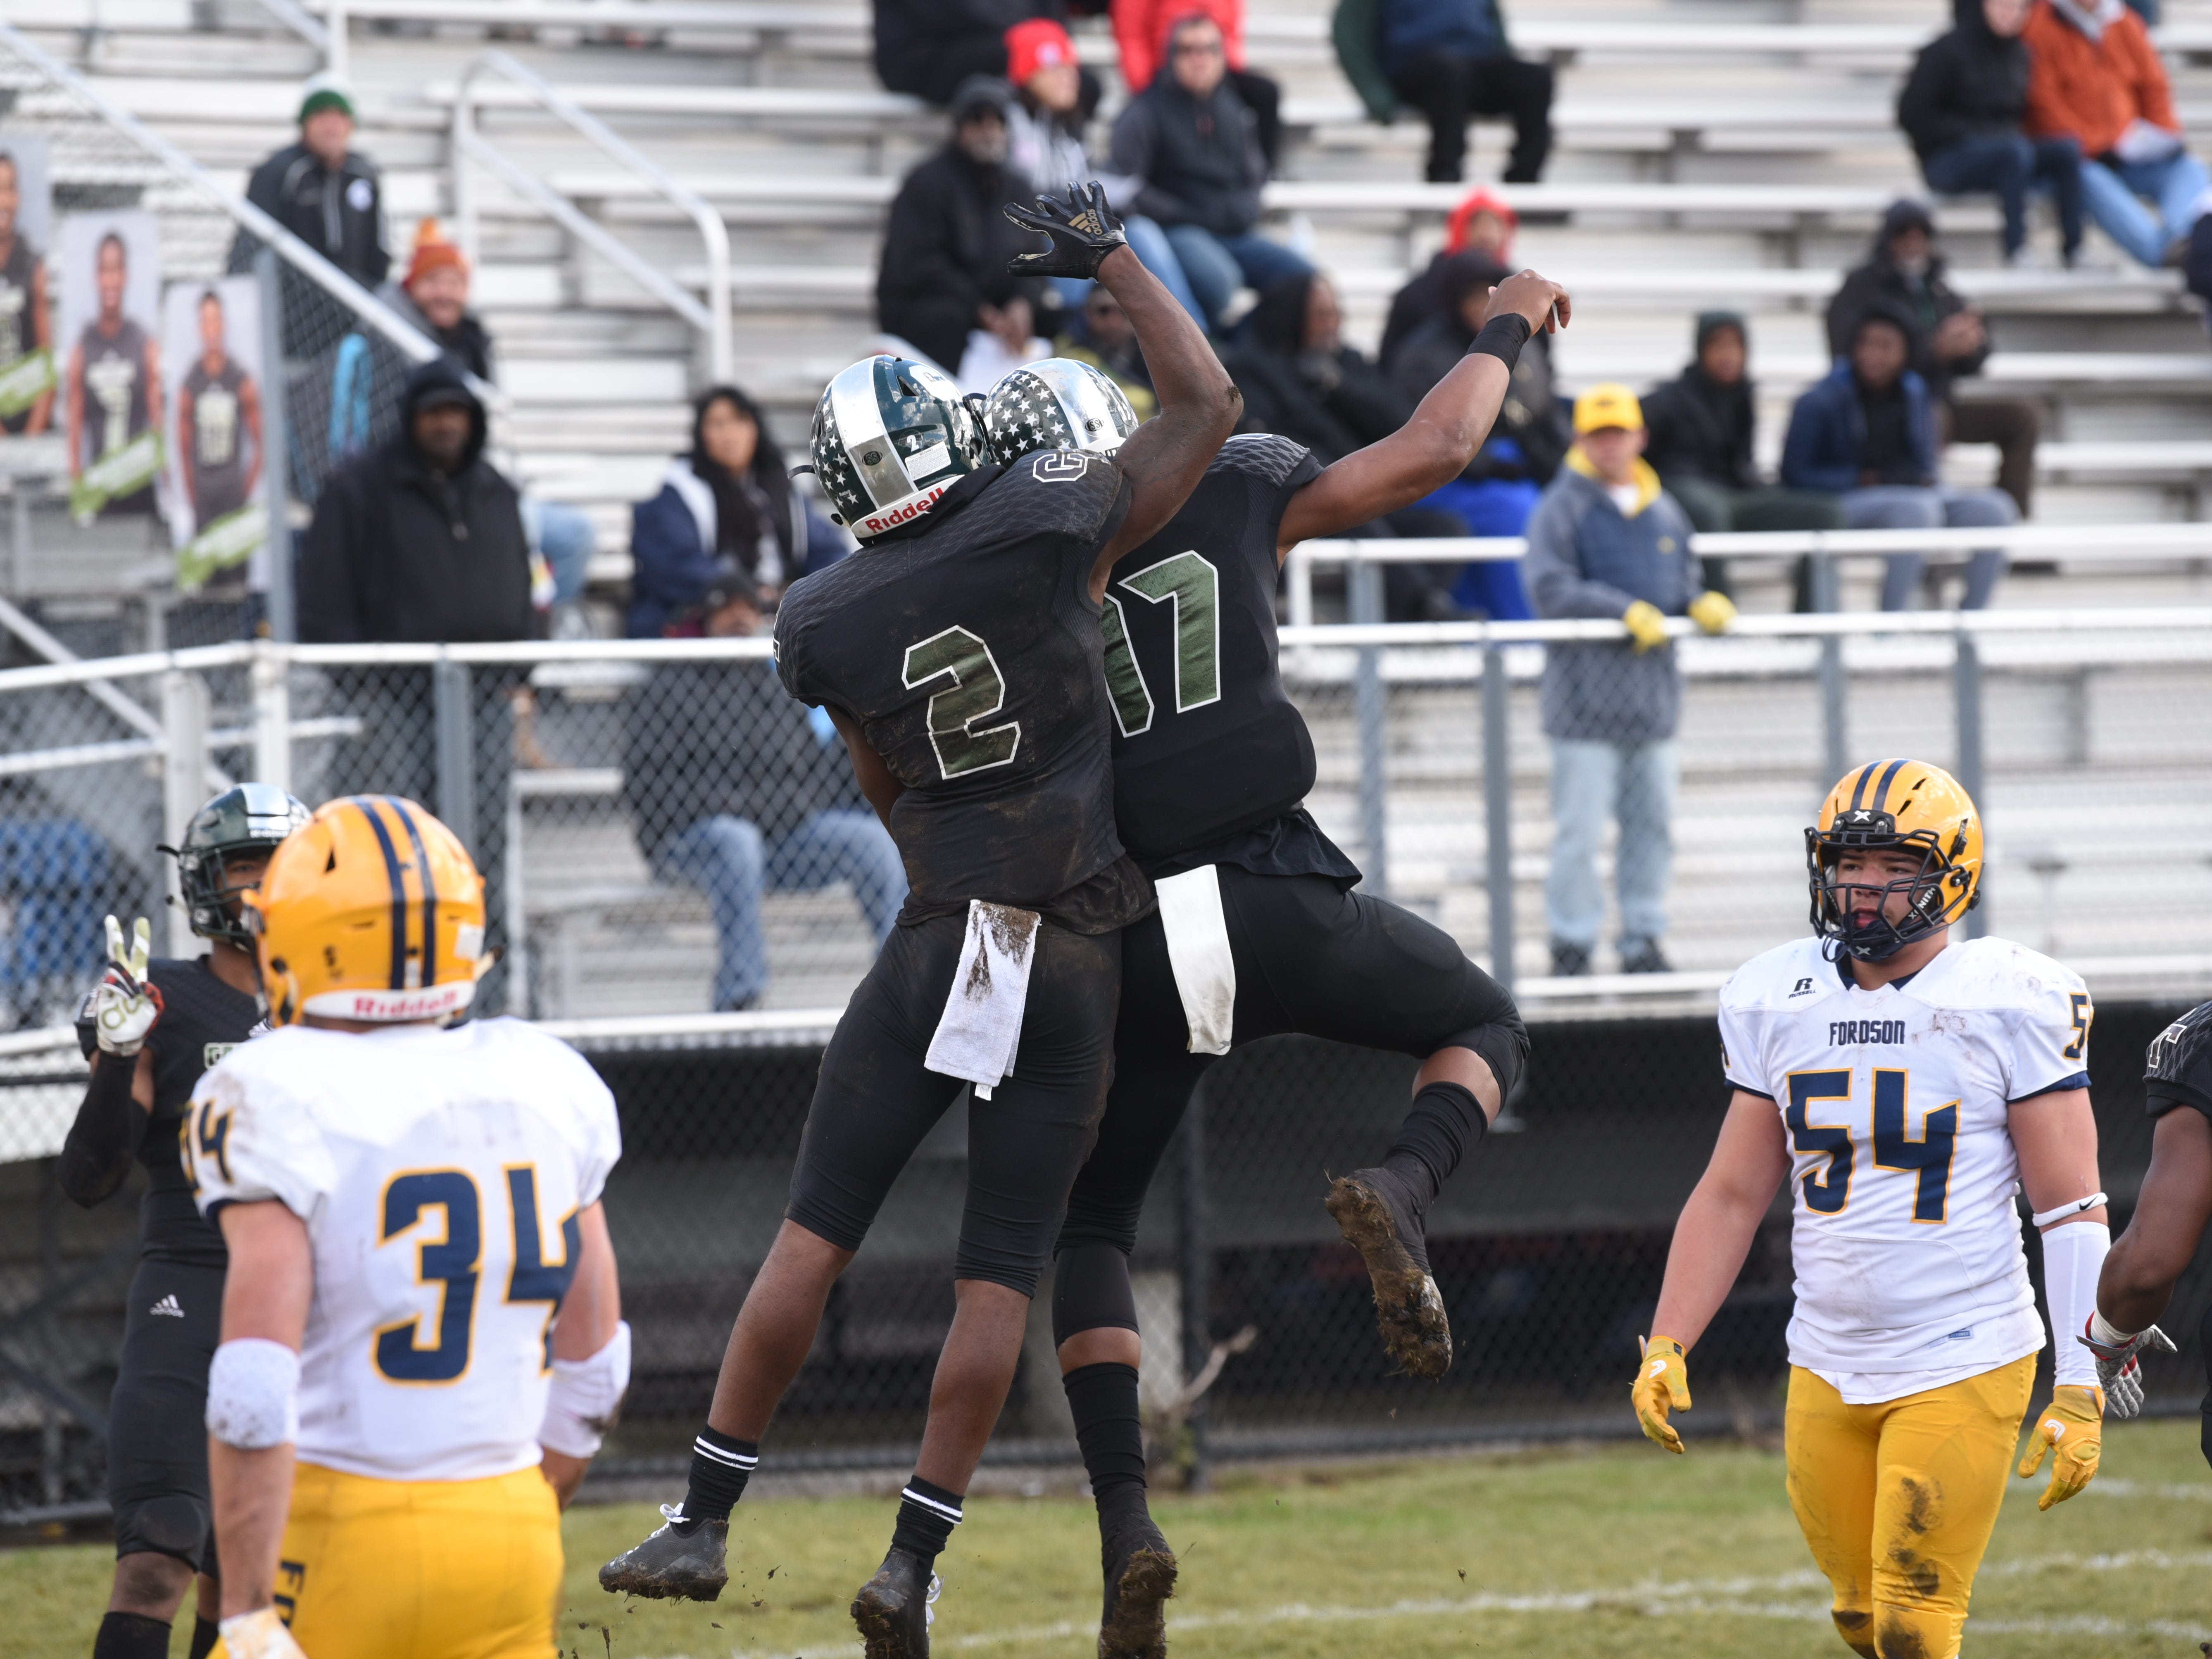 Cass Technical High School players Kyron McKinnie-Harper (2) and Jalen Graham (17) celebrate a first-quarter touchdown against Dearborn Fordson High School